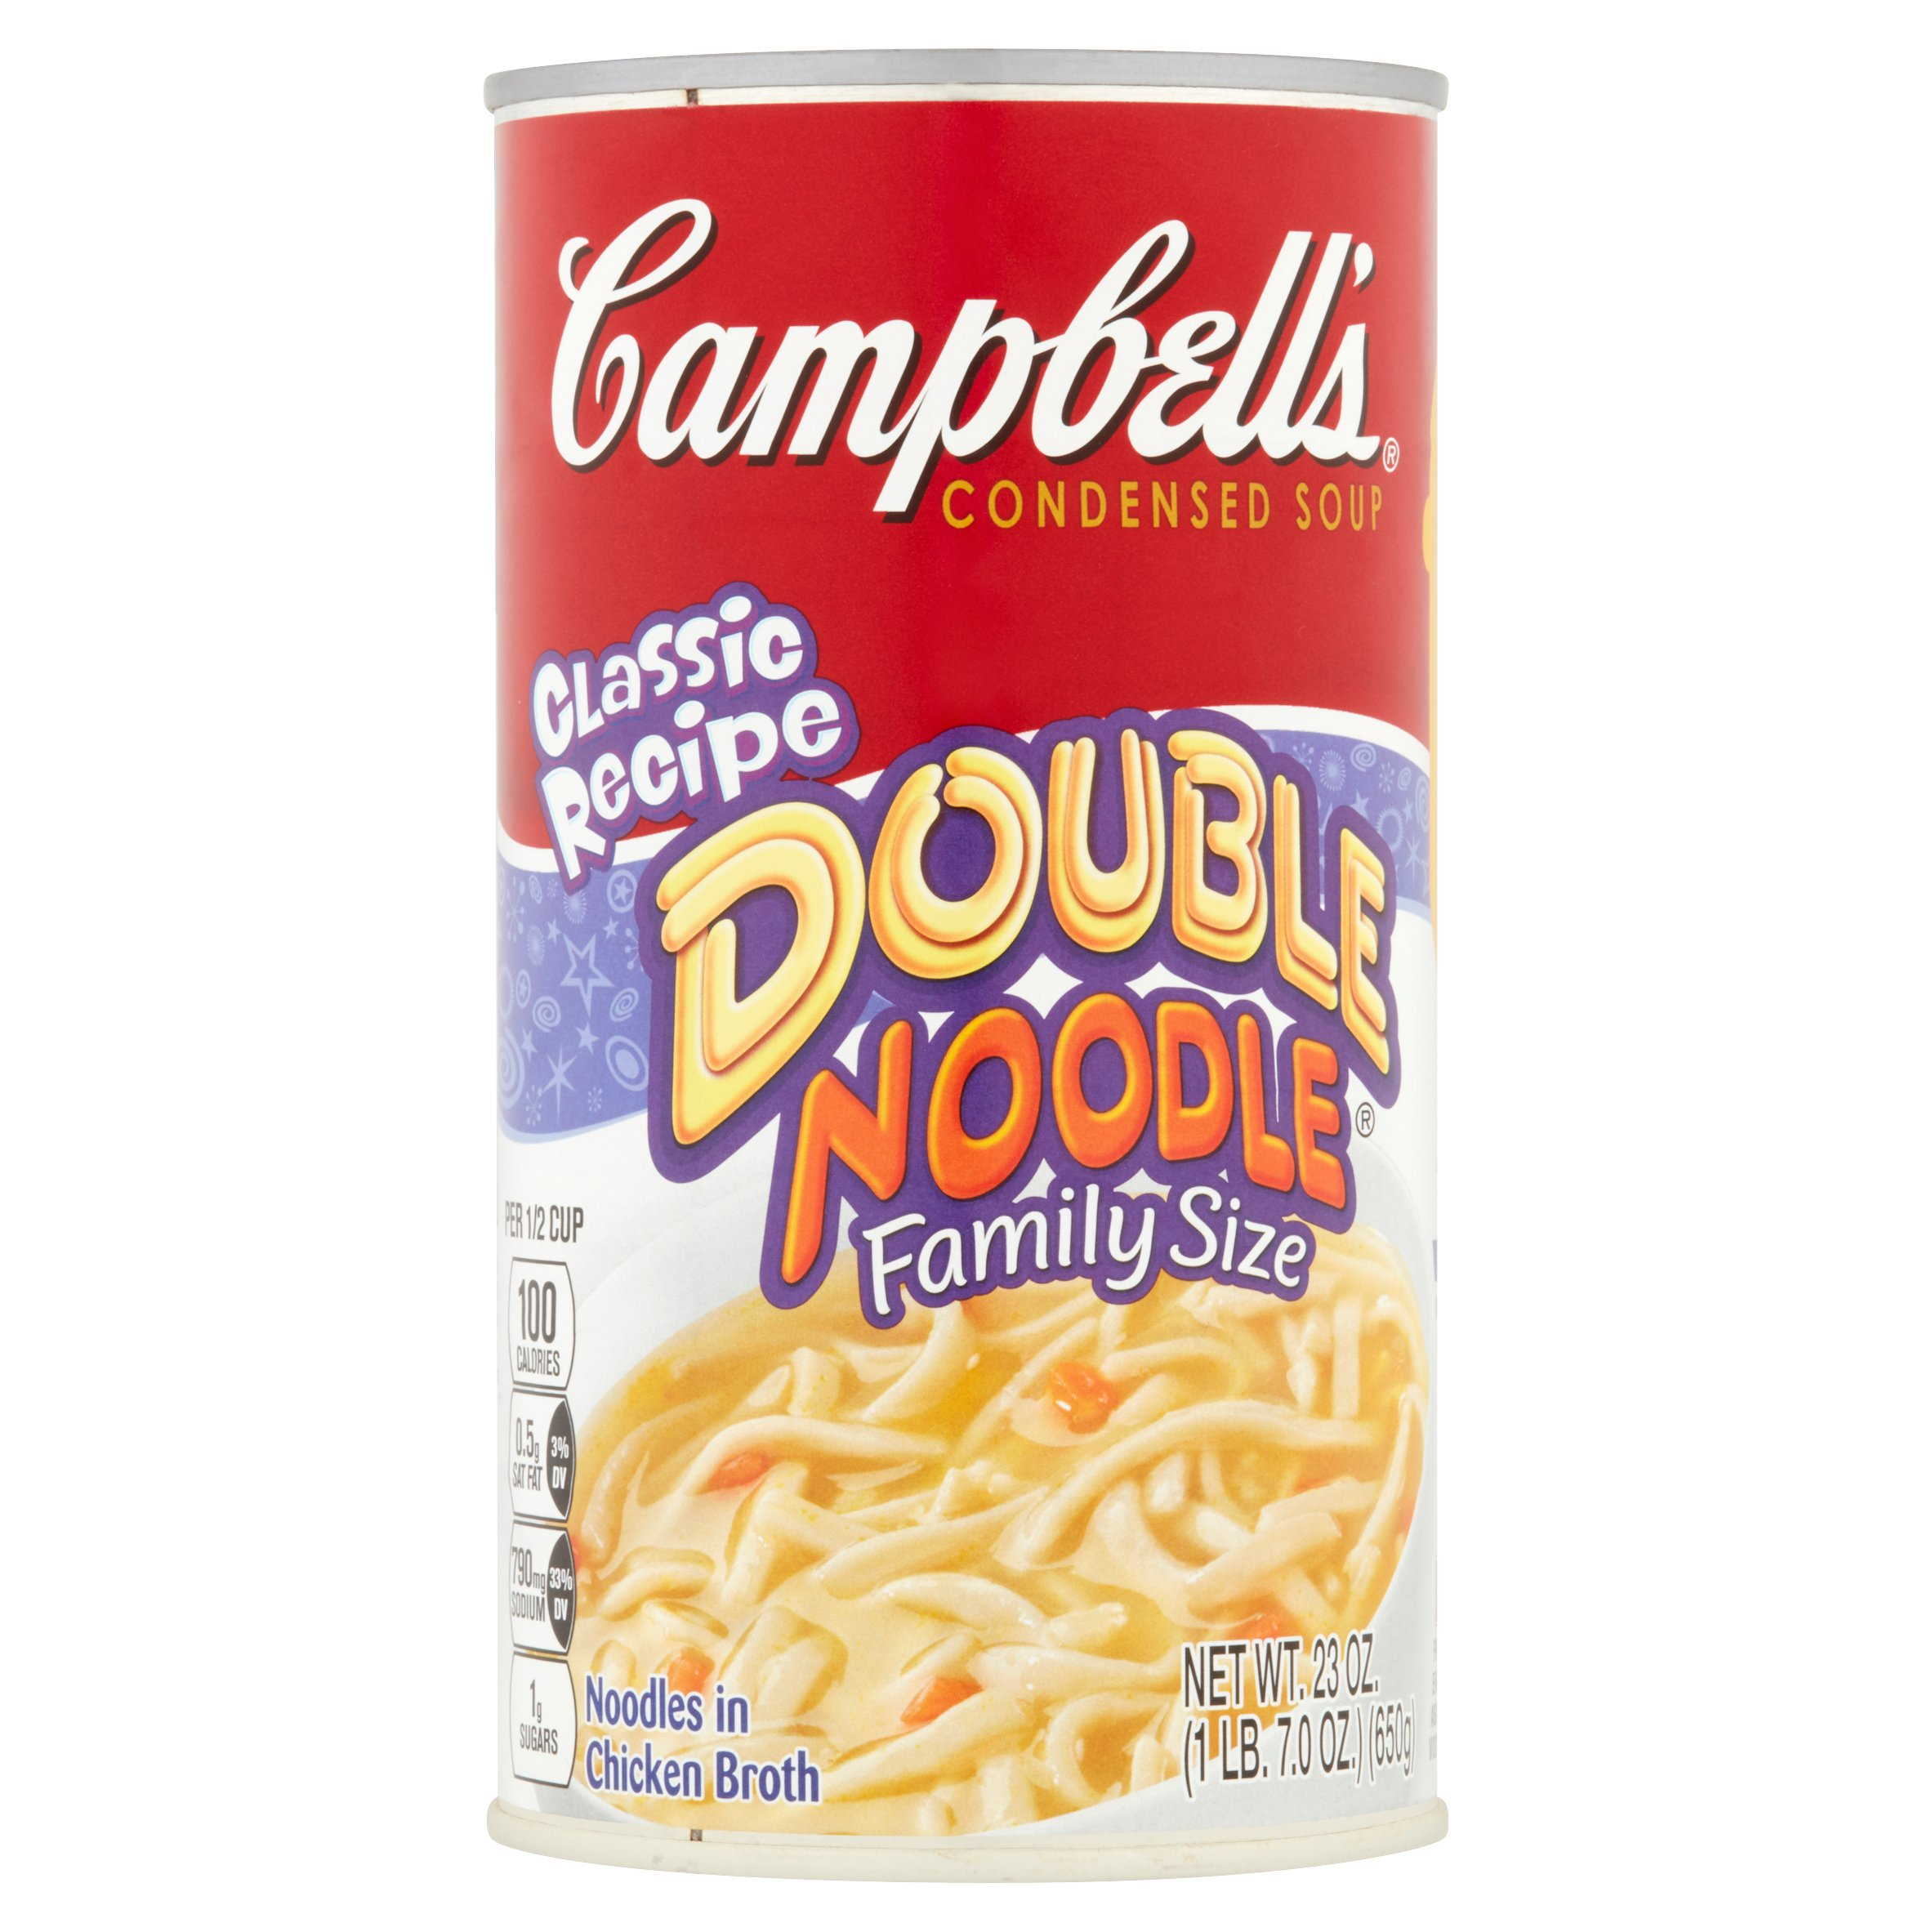 Campbell's Family Size Classic Recipe Double Noodle Condensed Soup, 23 oz